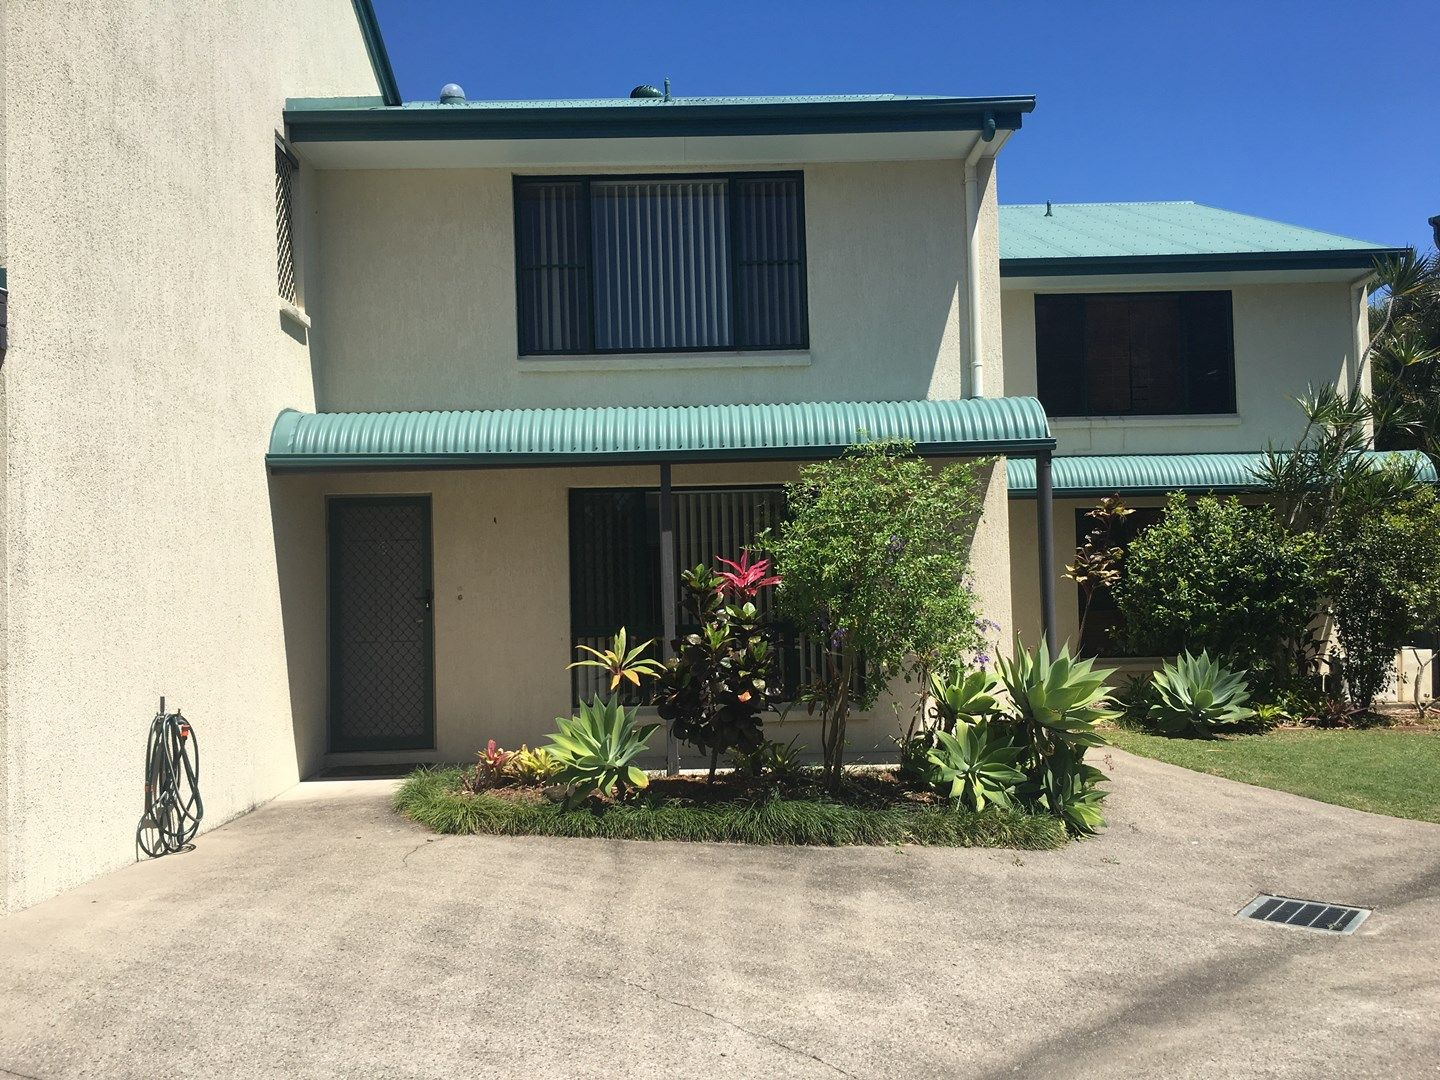 5/34 Lows Drive, Pacific Paradise QLD 4564, Image 14